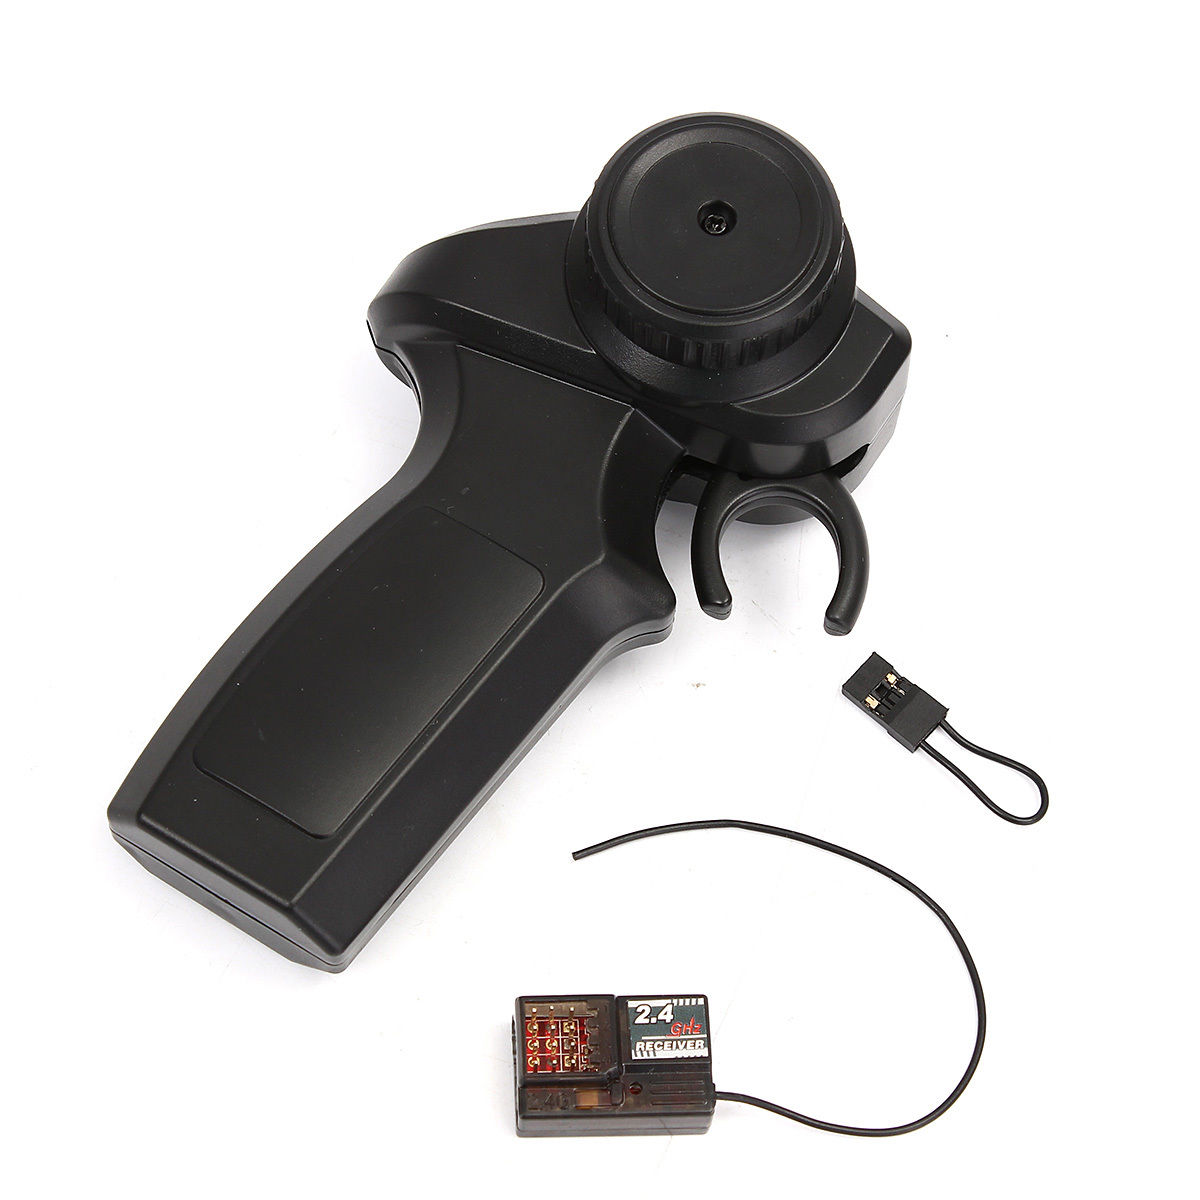 New Arrival Black 2.4GHz Skateboard Mini Controller With Receiver Transmitter For Electric Skateboard Accessories<br>